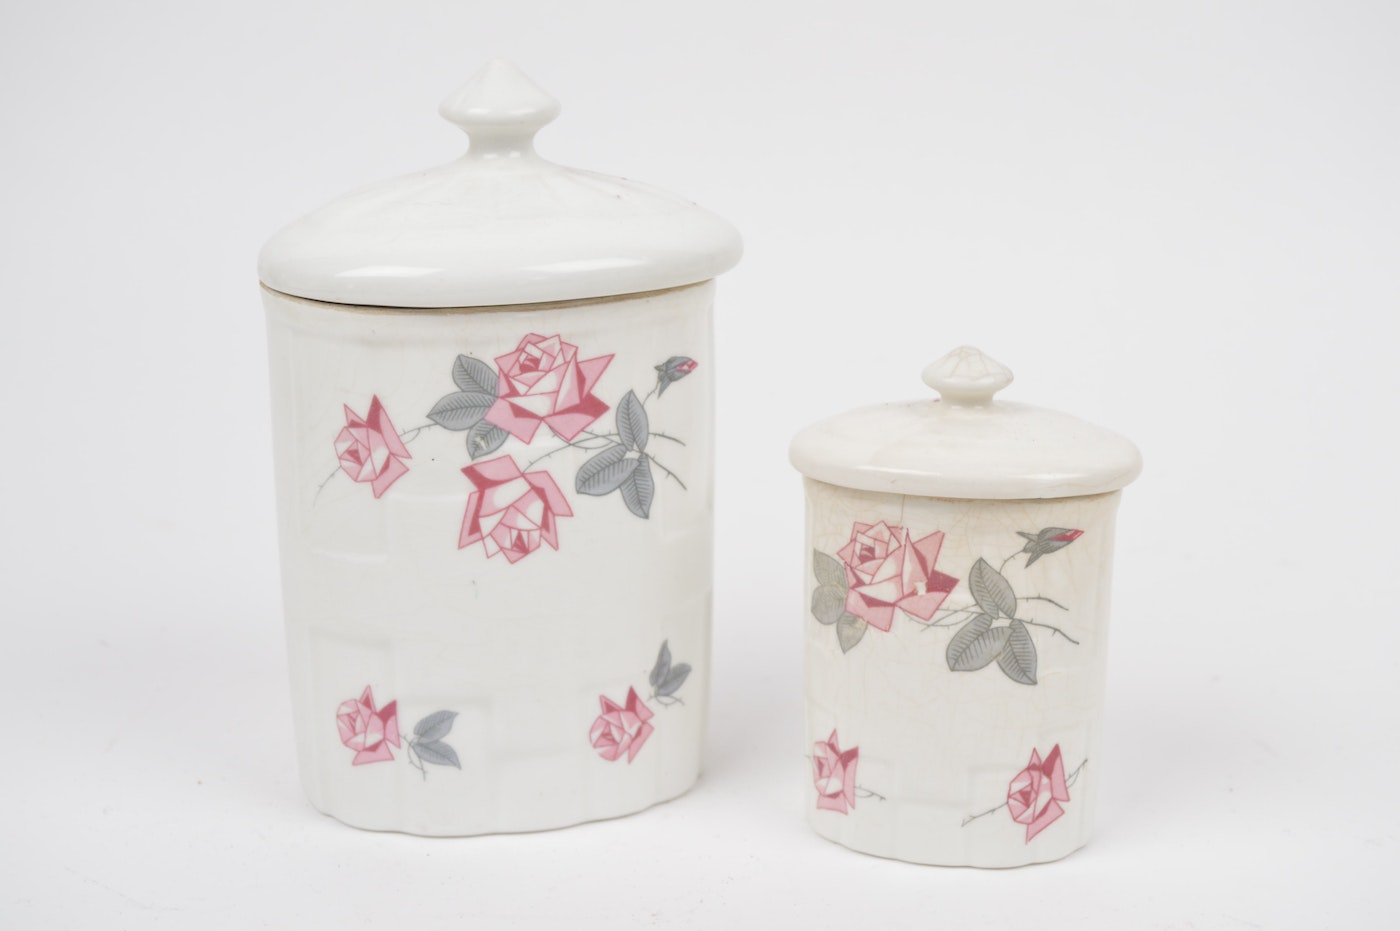 Ceramic porcelain kitchen decor and more ebth for Kitchen designs and more